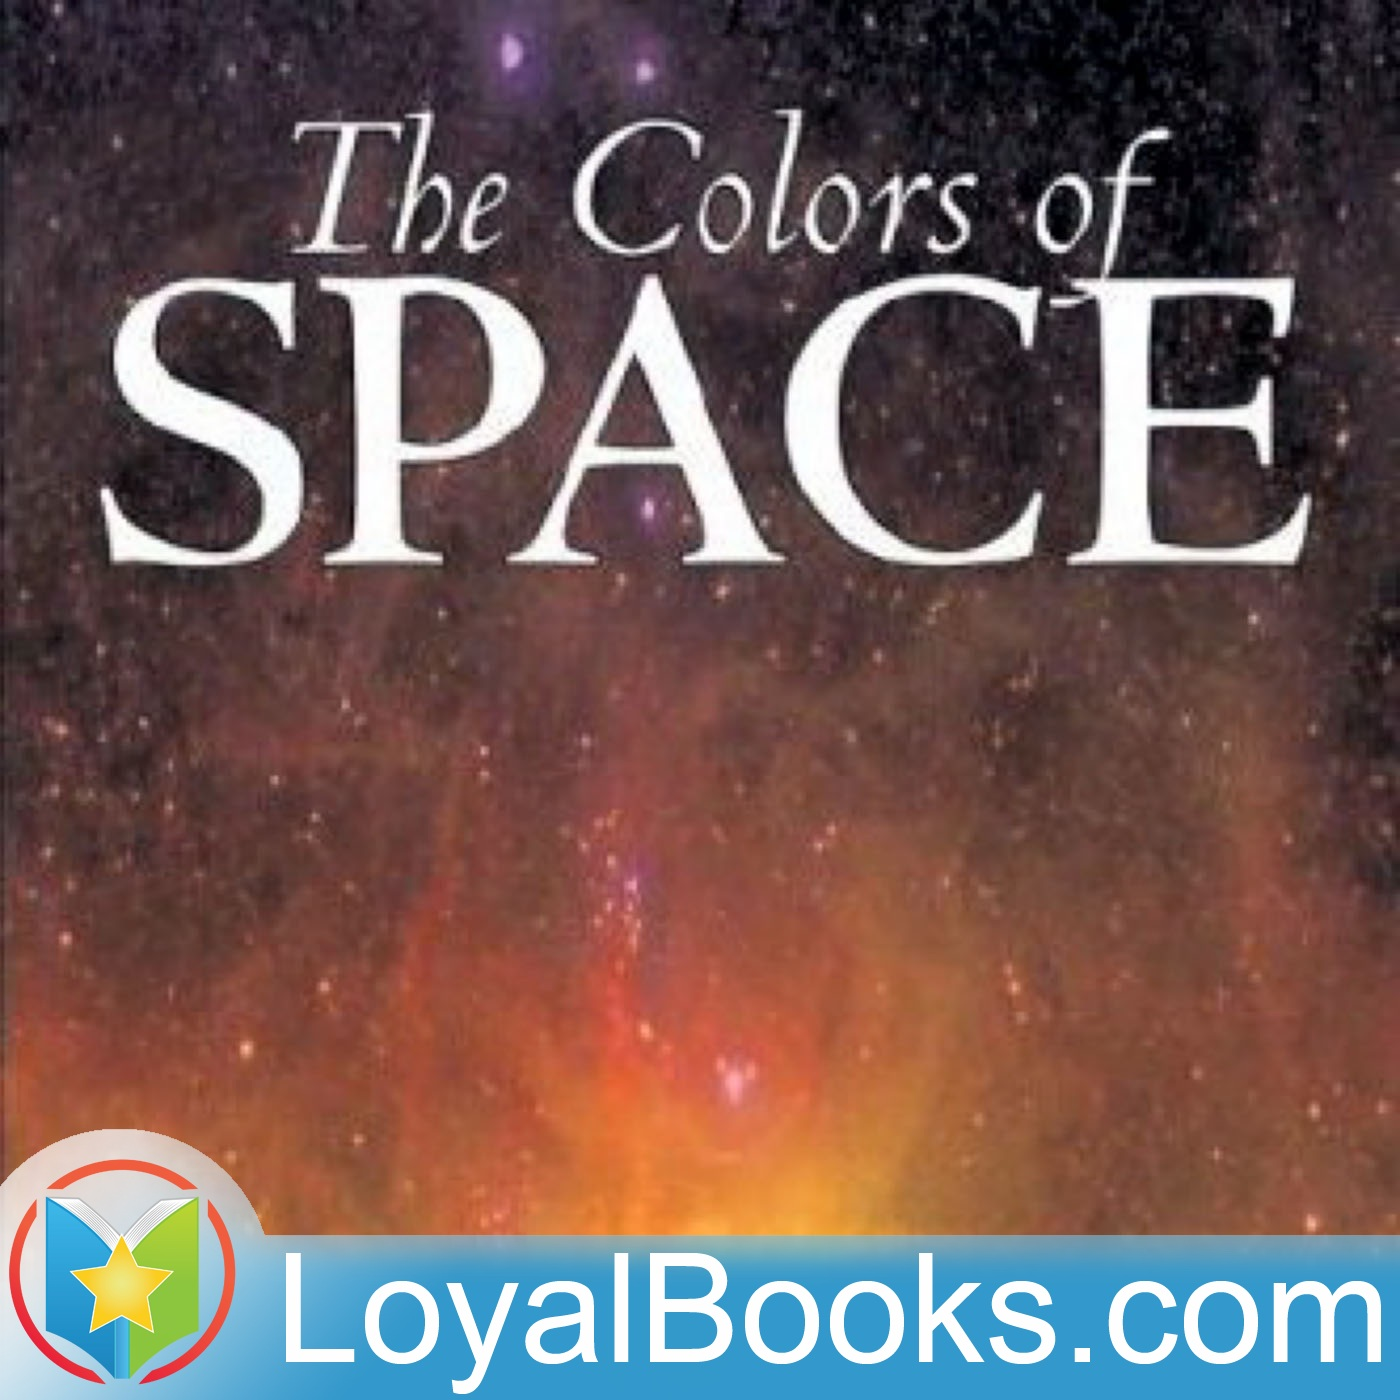 <![CDATA[The Colors of Space by Marion Zimmer Bradley]]>